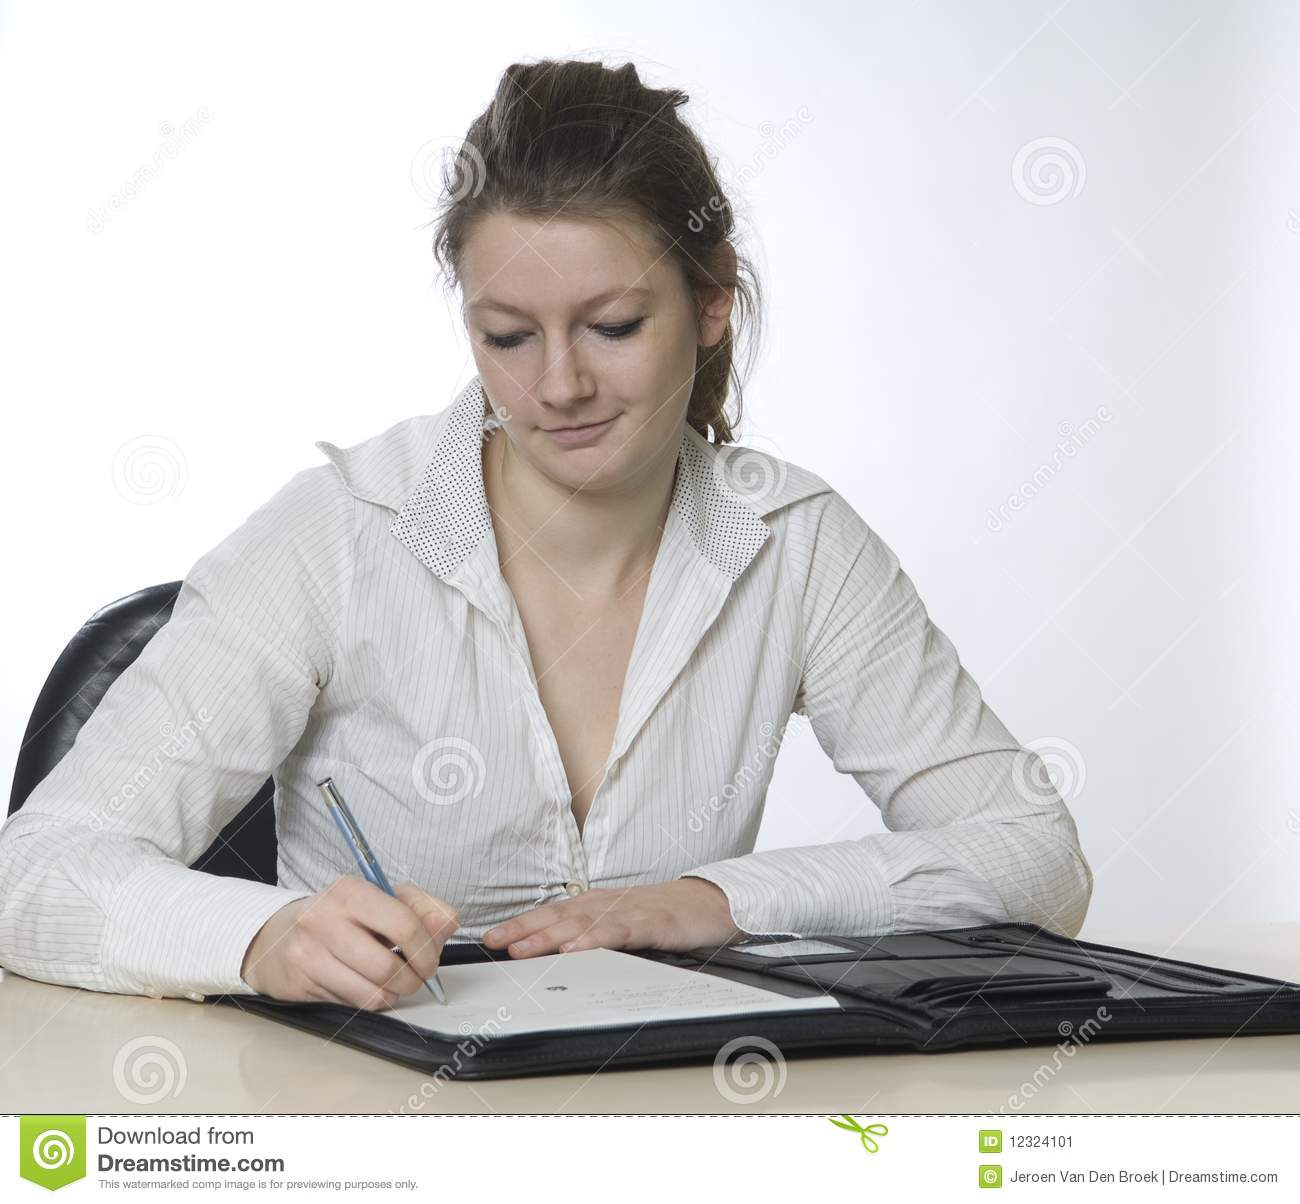 Woman Writing Stock Image - Image: 12324101